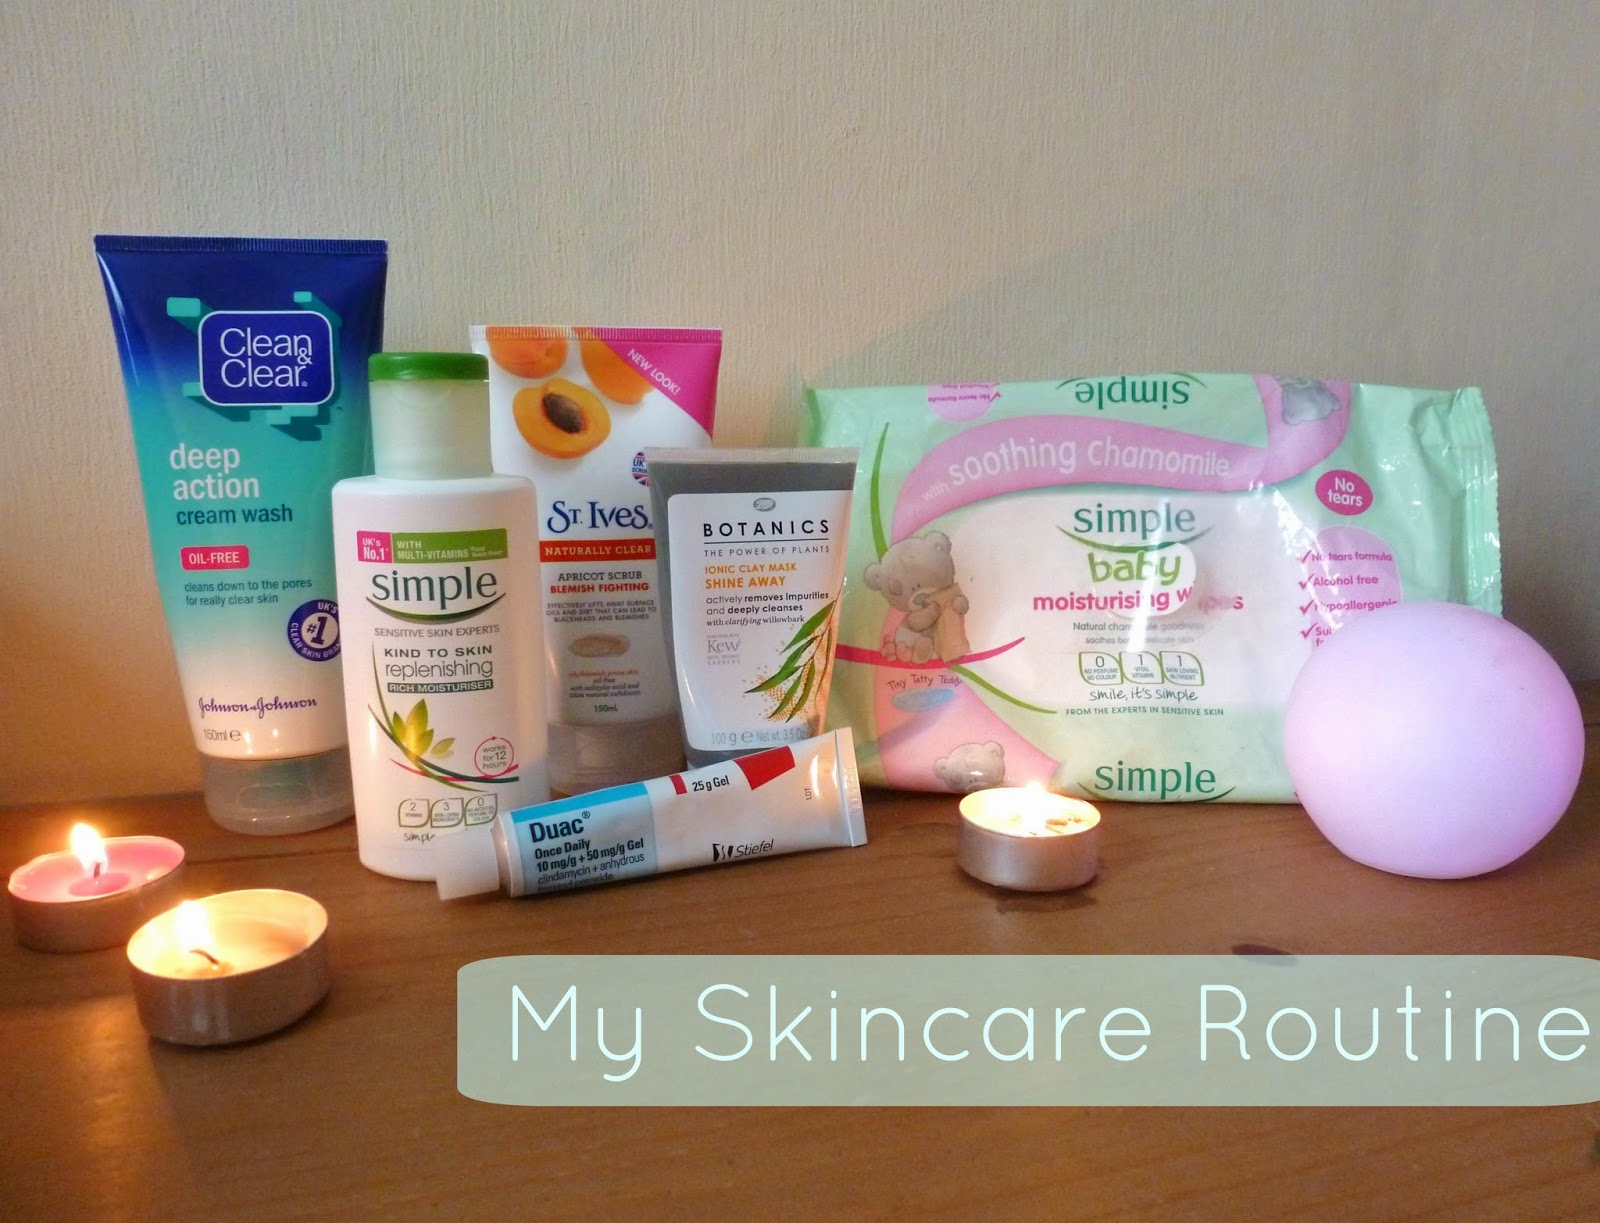 my skincare routine. candles simple skin care clean and clear duac st ives scrub botanics